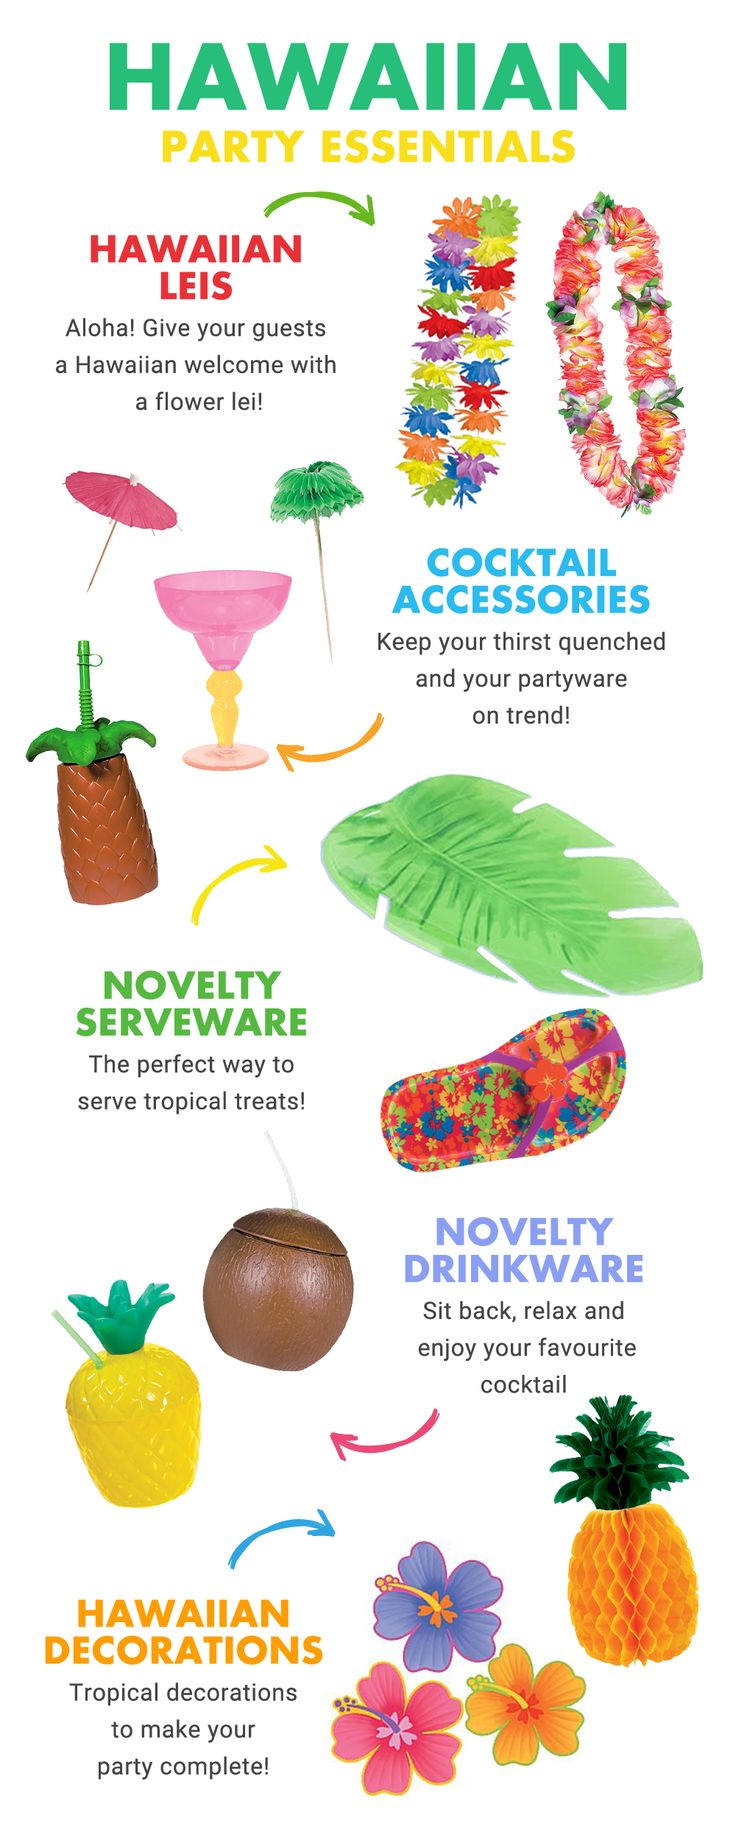 Looking for inspiration for a Hawaiian party theme? Pick up all the Hawaiian party essentials you need for a tiki-tastic summer party on partydelights.co.uk including leis, pineapple cups, Hawaiian party decorations and more!